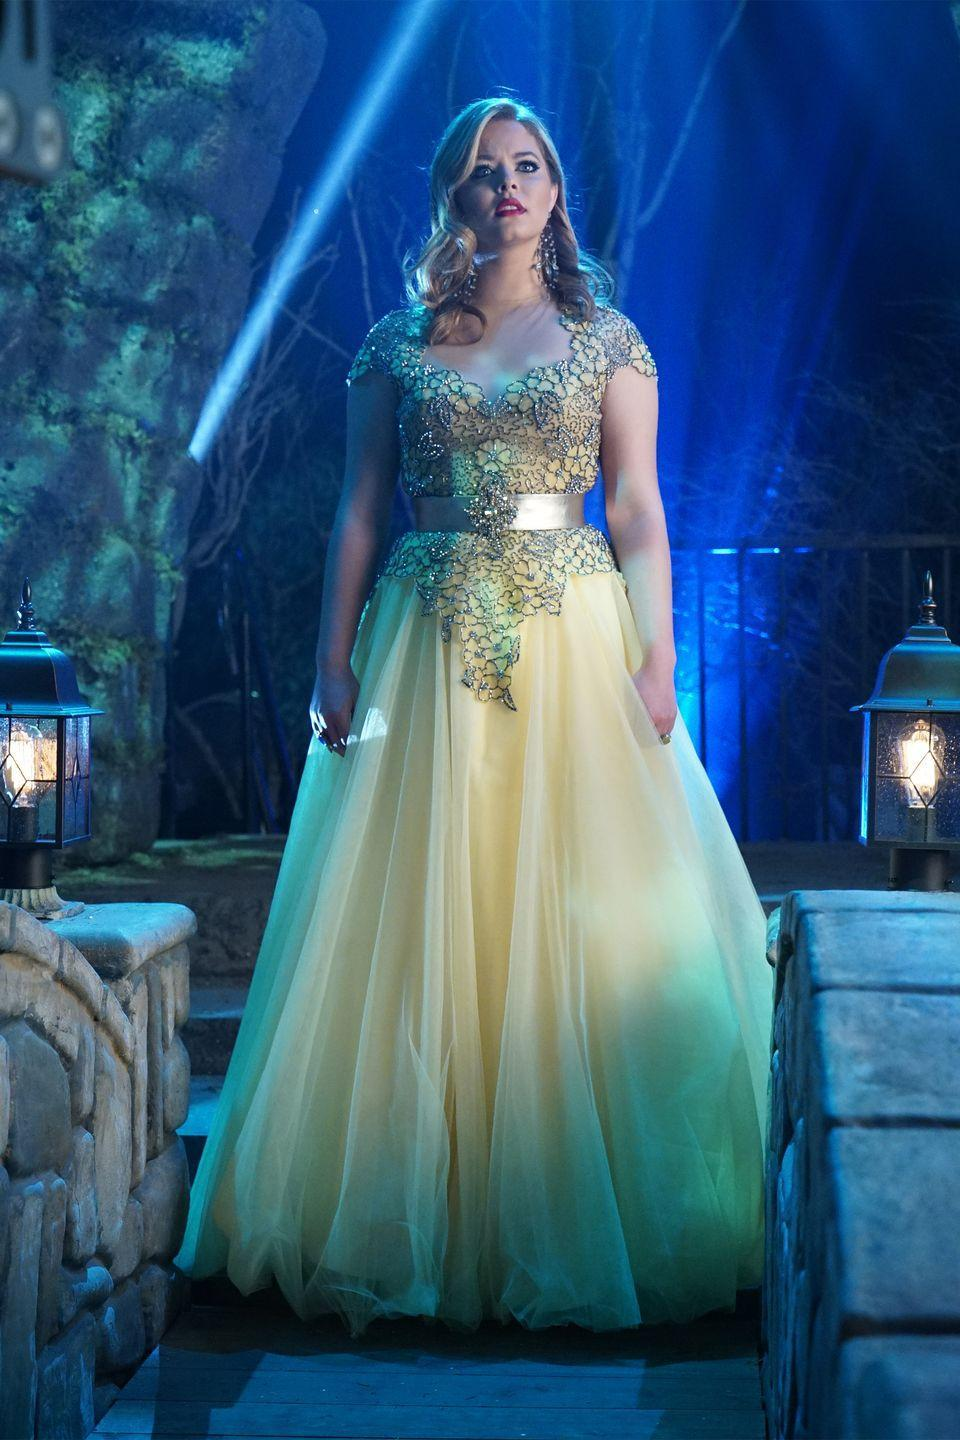 """<p>While the entire crew at Rosewood High School looked amazing on prom night, Alison was the belle of the ball in this cream gown, complete with loose curls and a red lip. </p><p> <a class=""""link rapid-noclick-resp"""" href=""""https://www.amazon.com/Pretty-Little-Liars-Complete-Season/dp/B003Q93YBO?tag=syn-yahoo-20&ascsubtag=%5Bartid%7C10063.g.36197518%5Bsrc%7Cyahoo-us"""" rel=""""nofollow noopener"""" target=""""_blank"""" data-ylk=""""slk:STREAM NOW"""">STREAM NOW</a></p>"""